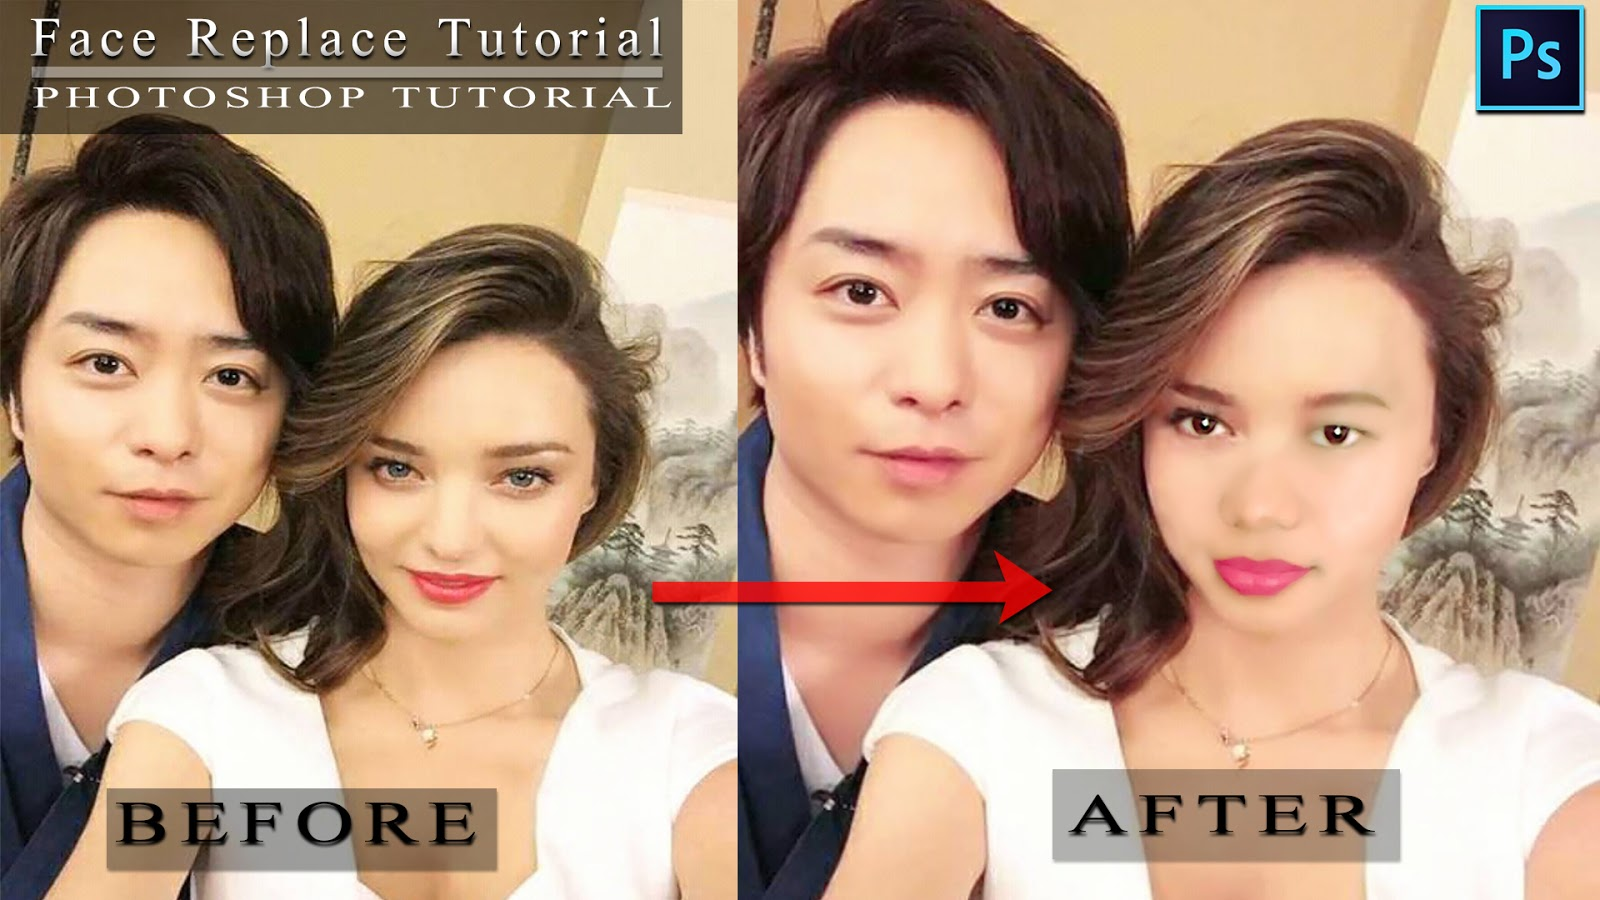 Photoshop Tutorial - How To Replace Face In Photoshop